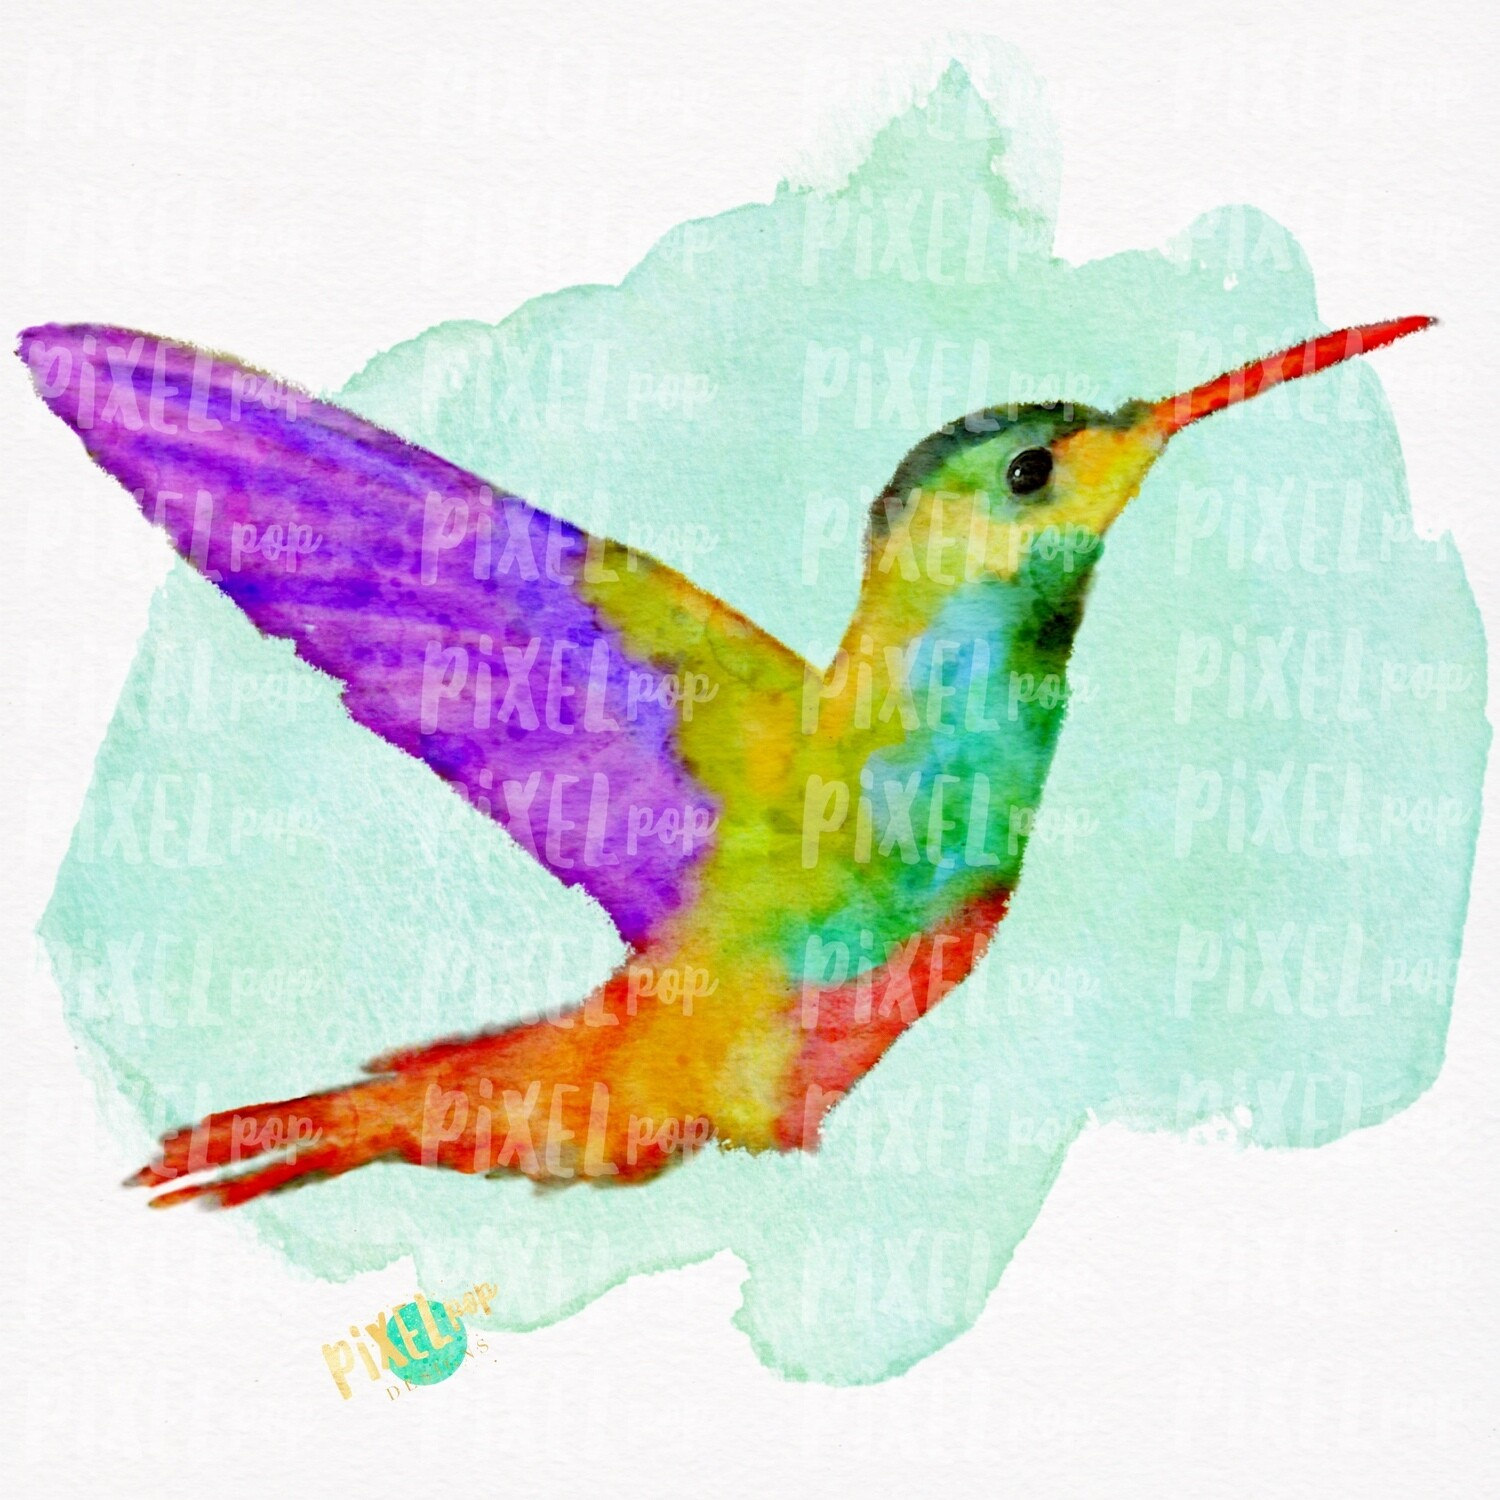 Watercolor Hummingbird PNG | Sublimation Watercolor Design | Hand Painted Bird | Watercolor Bird Digital Download | Printable Art | Clip Art